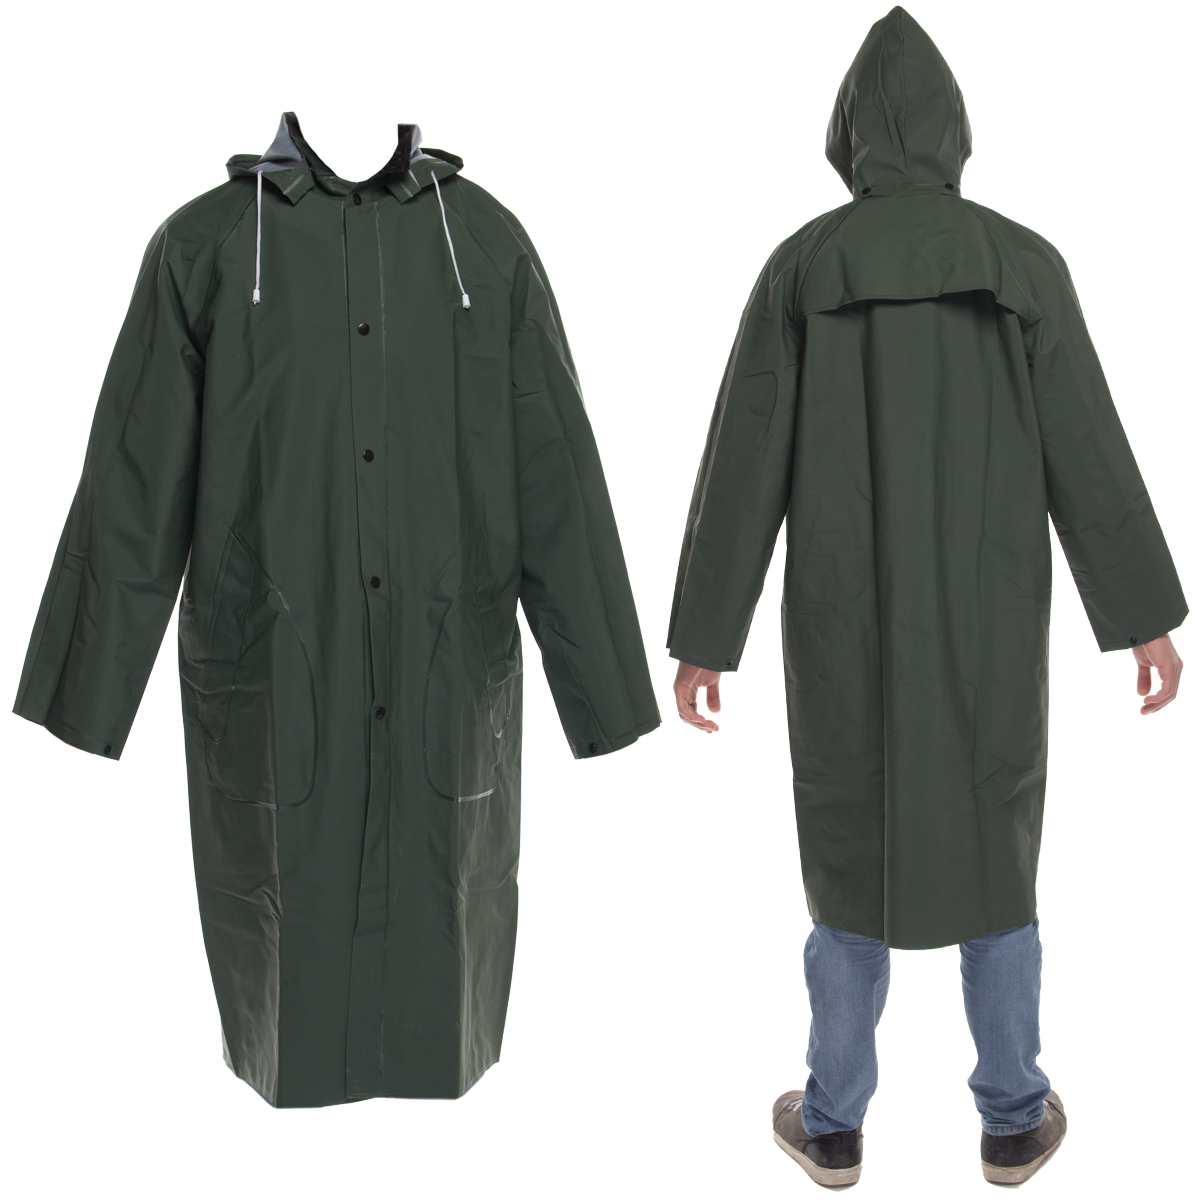 DiamondTitanMens Waterproof Long Raincoat With Removable Hood PVC Protection